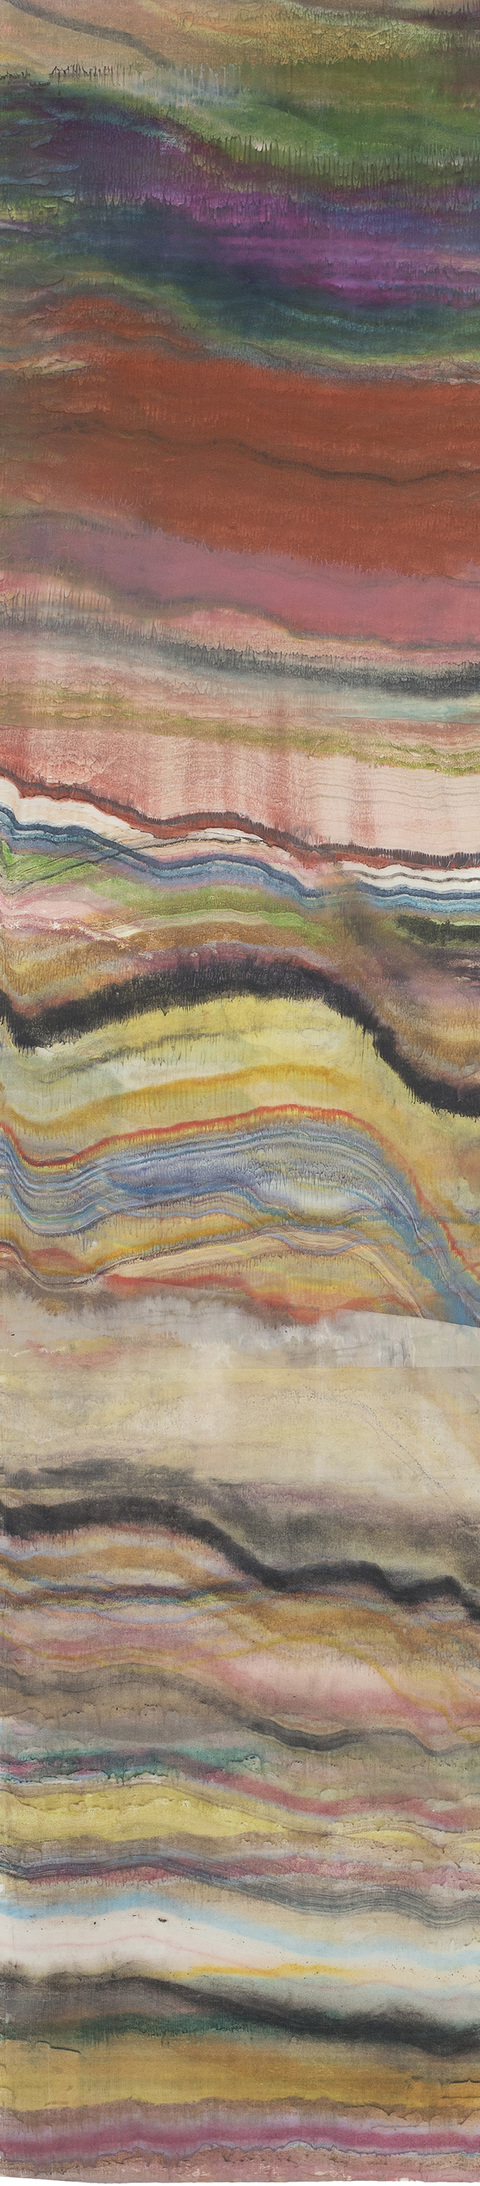 Laura Moriarty On Paper Encaustic on uda gami